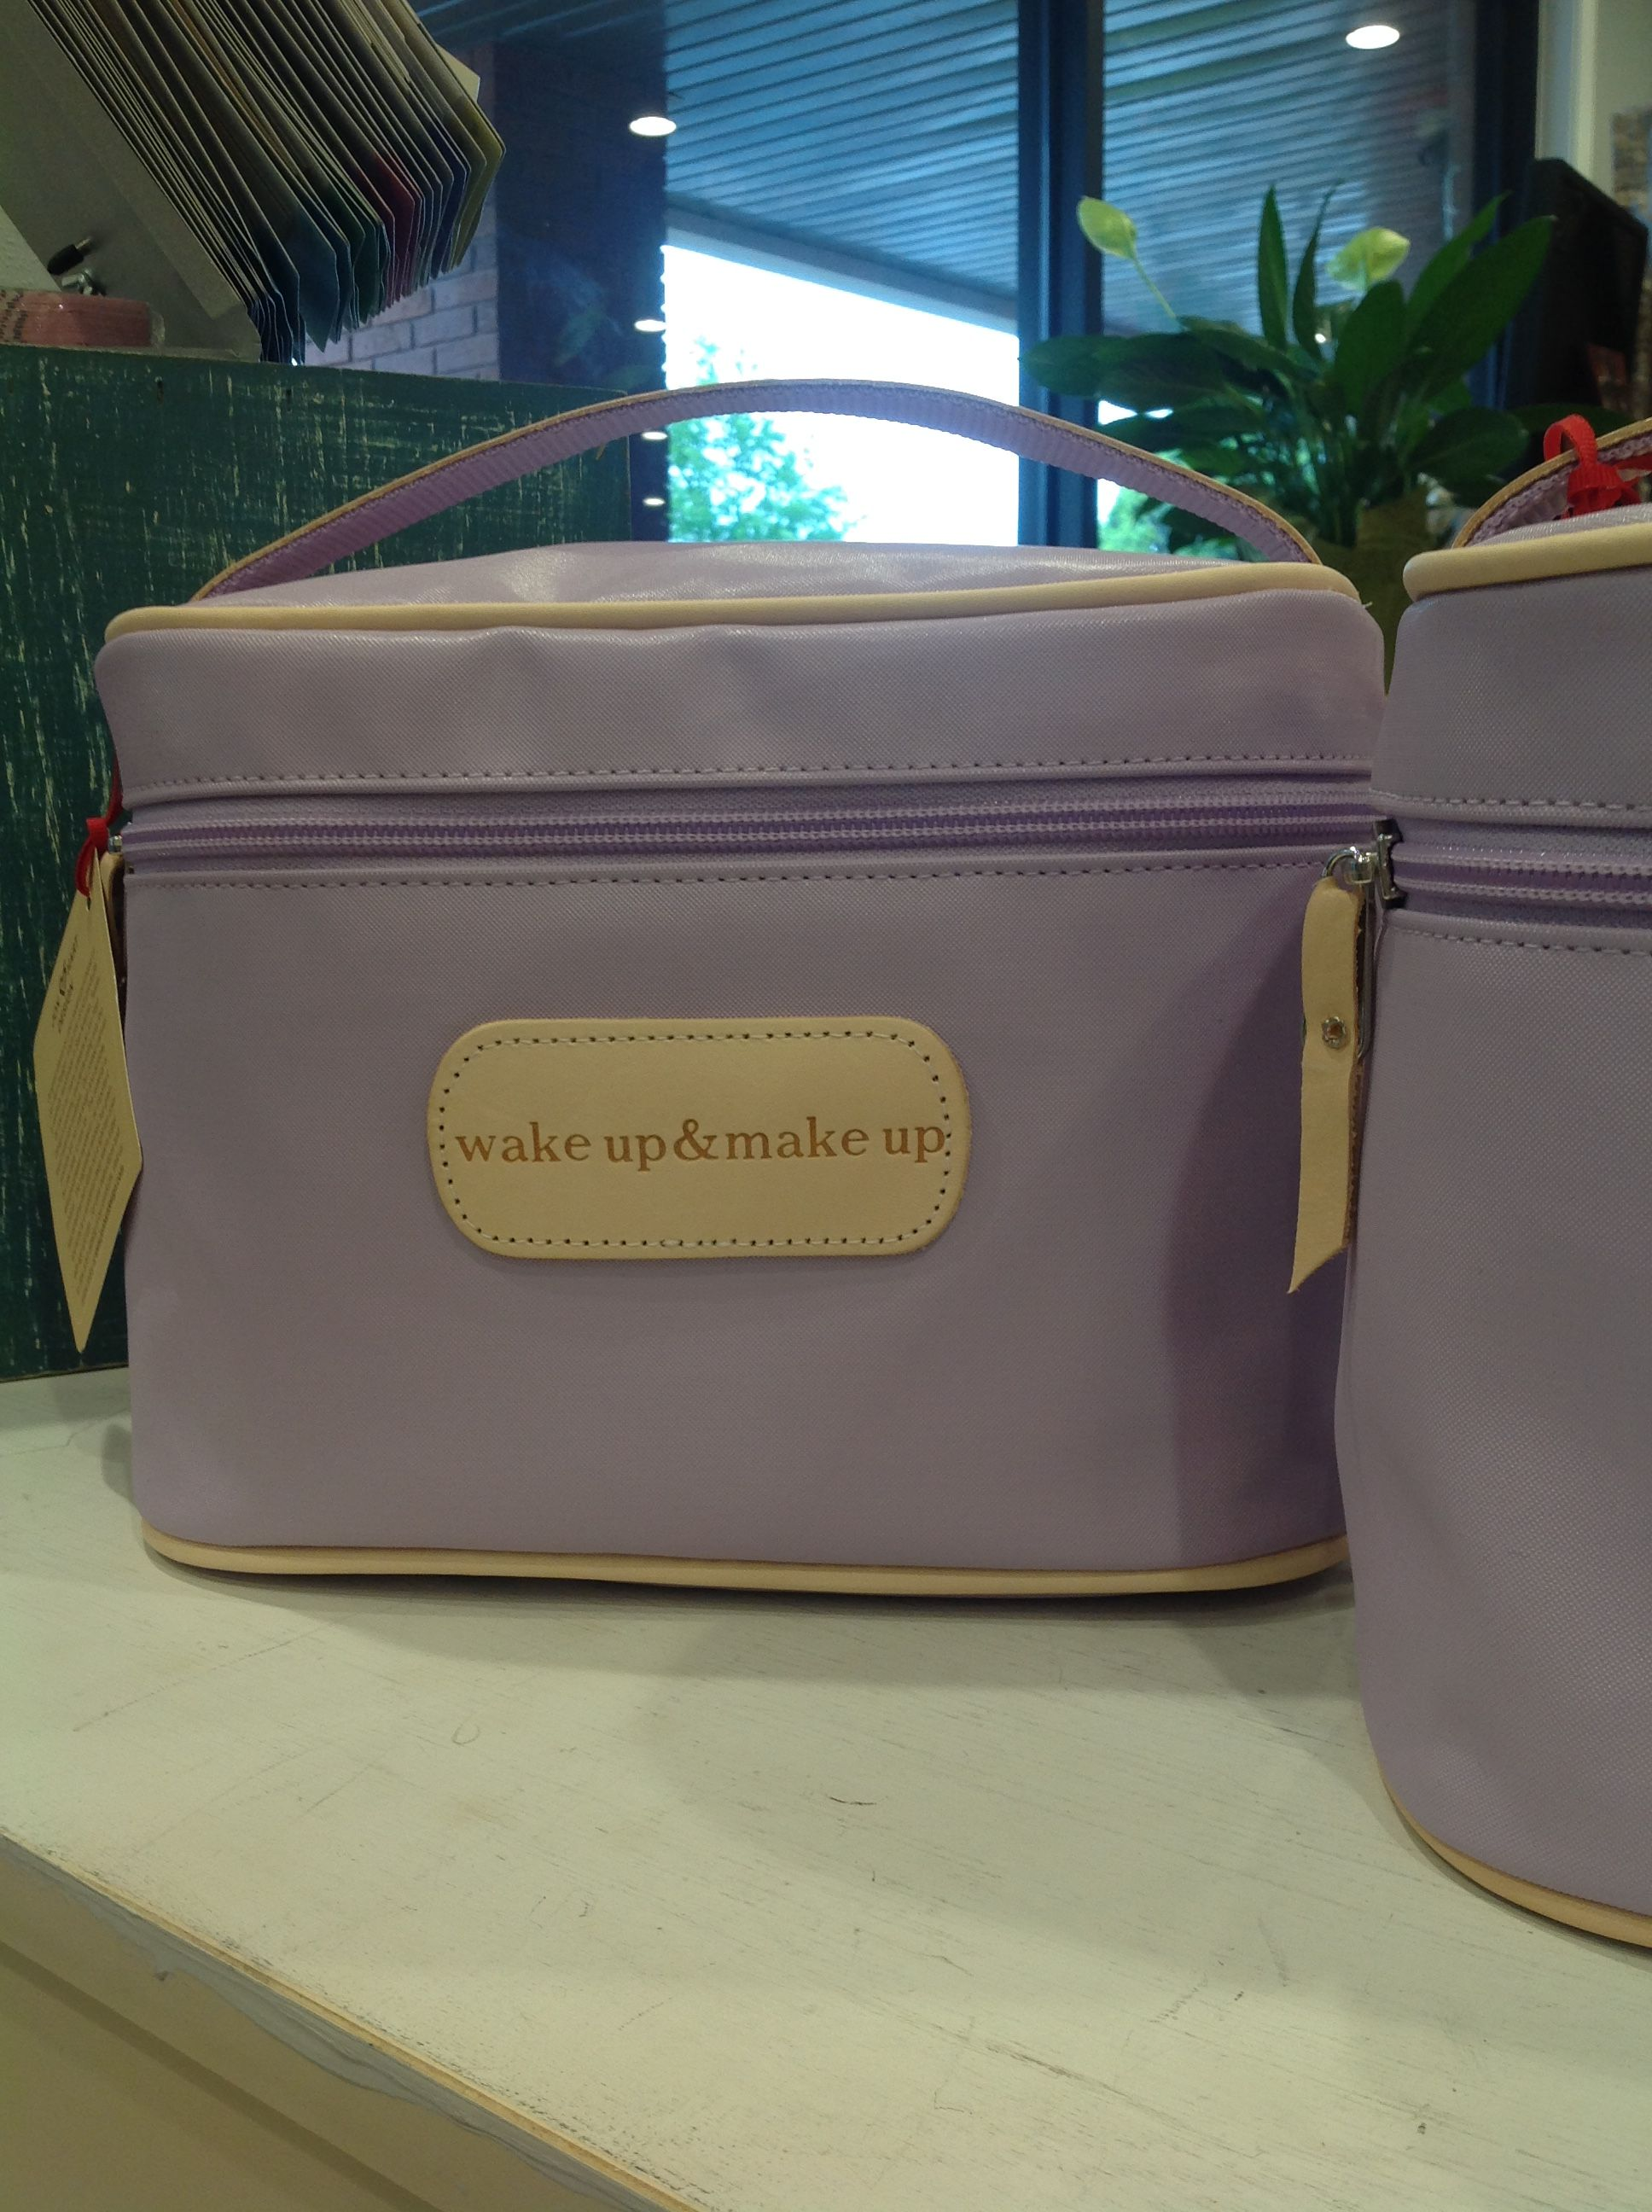 Lilac makeup case by Jon Hart Designs Travel bags